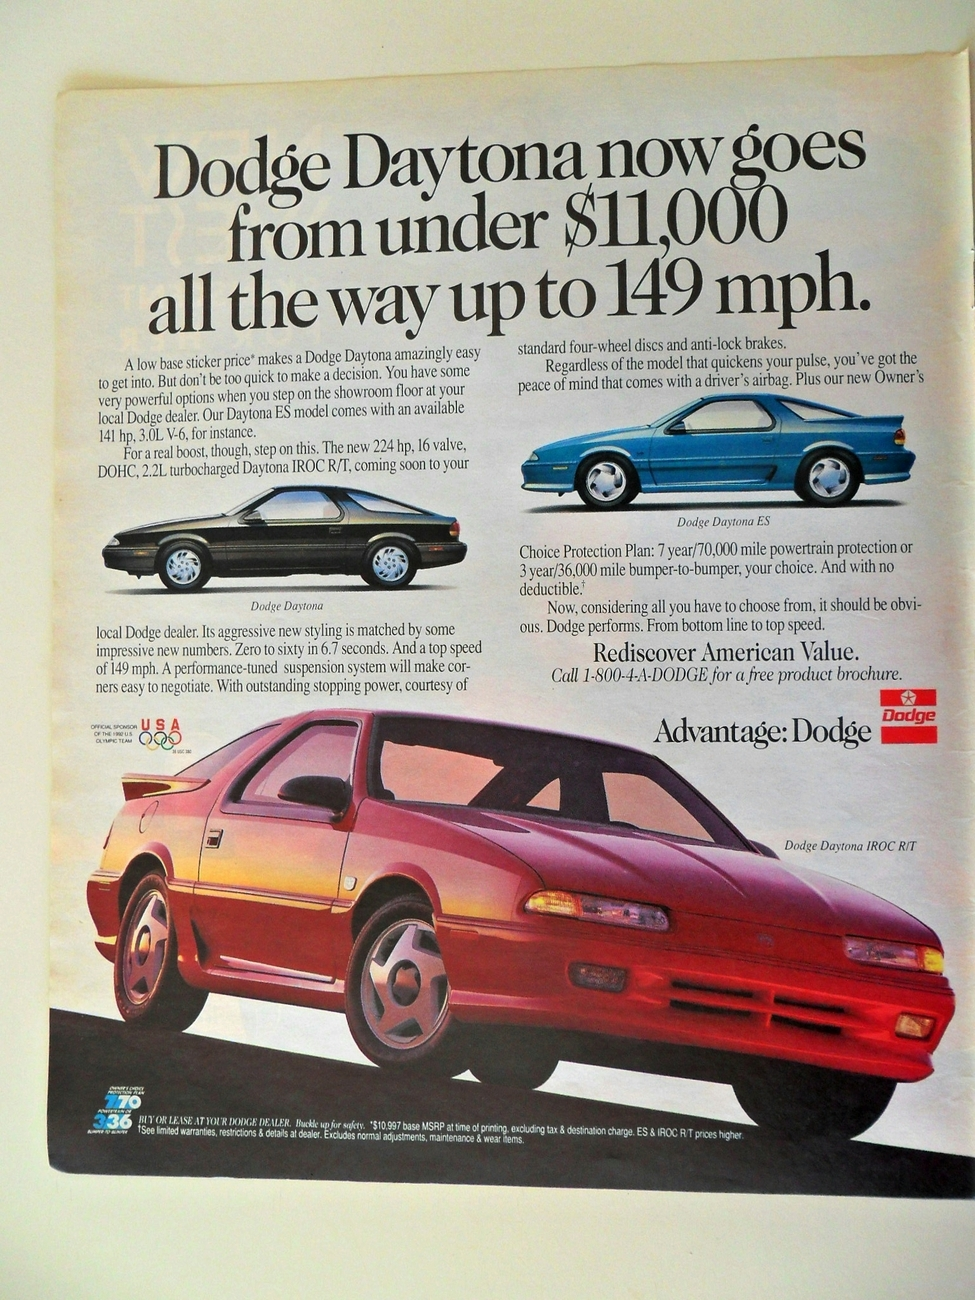 Print Ad Dodge Daytona 1991 ES & IROC R/T Under $11,000